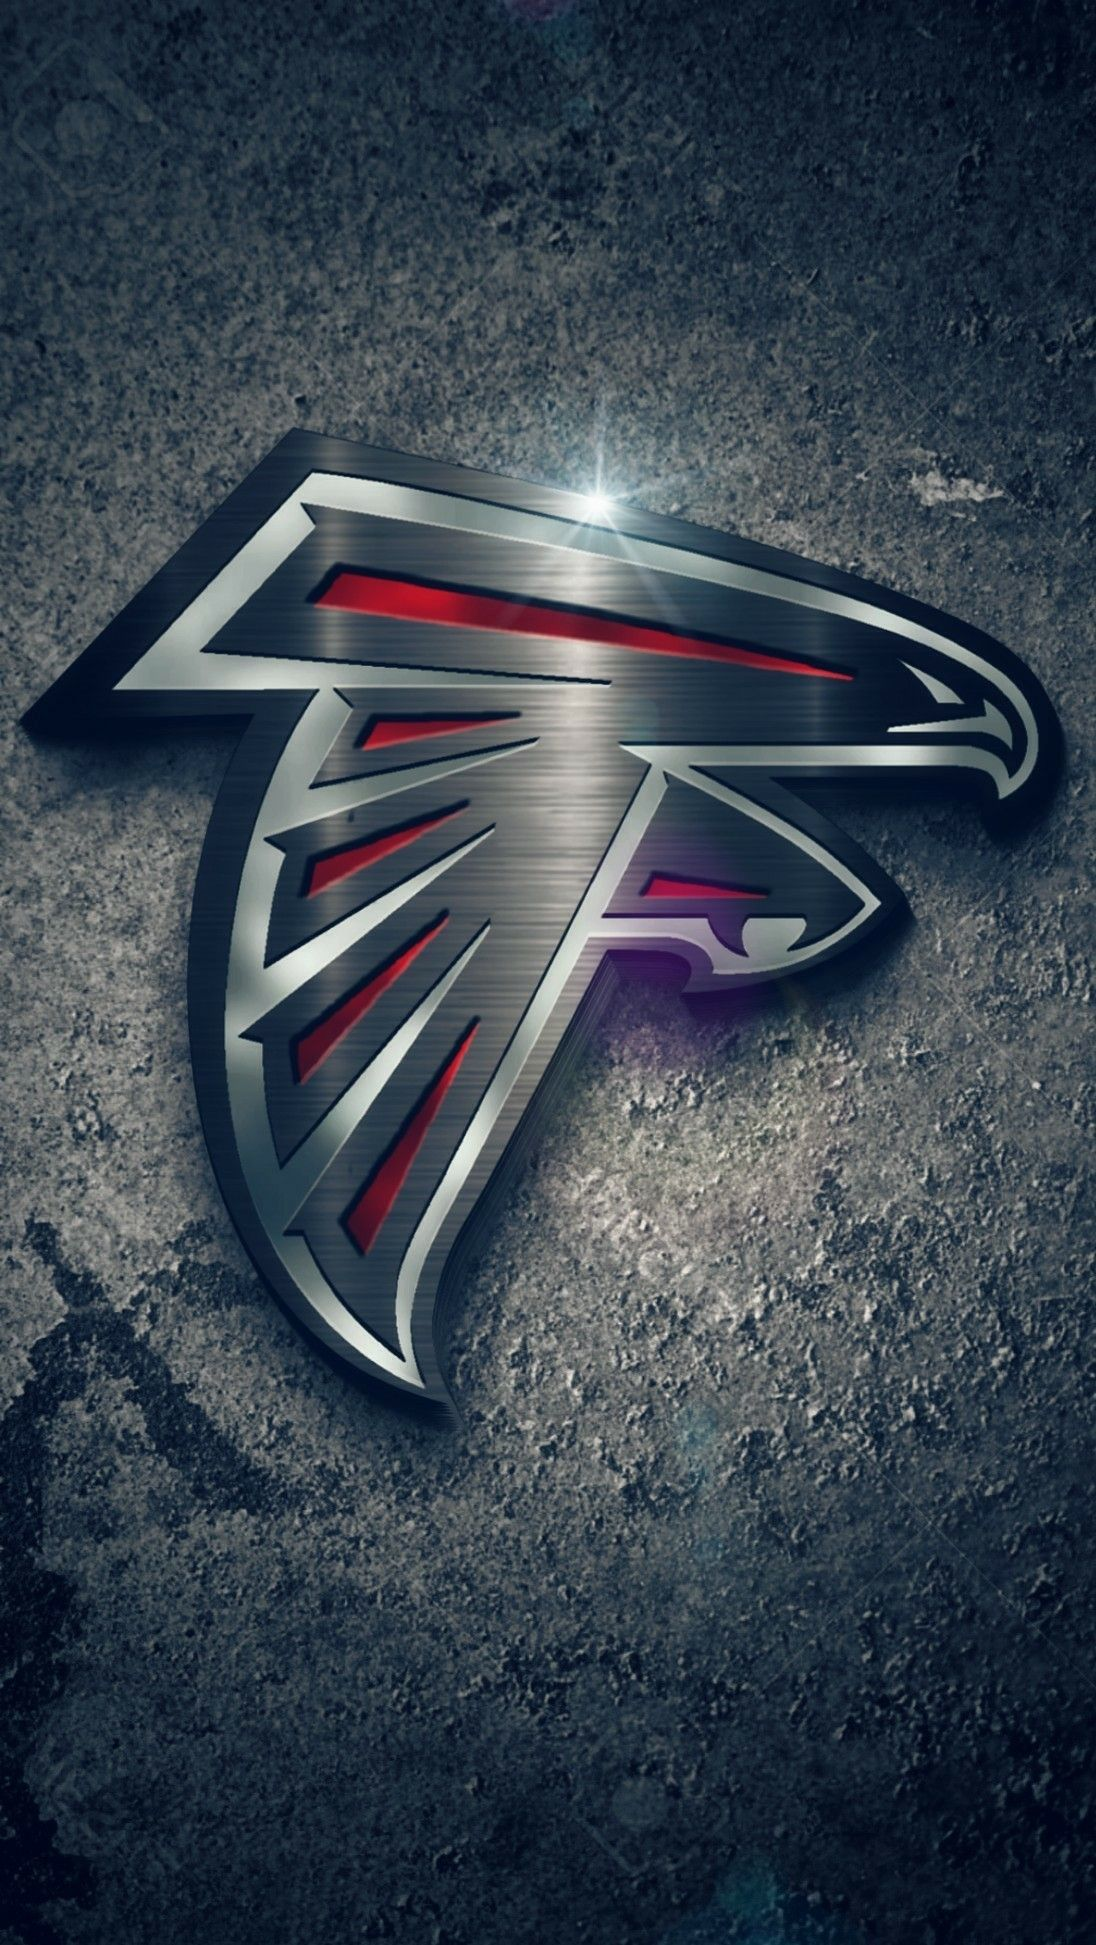 Nfl Falcons Logo Wallpaper Atlanta Falcons Logo Atlanta Falcons Wallpaper Atlanta Falcons